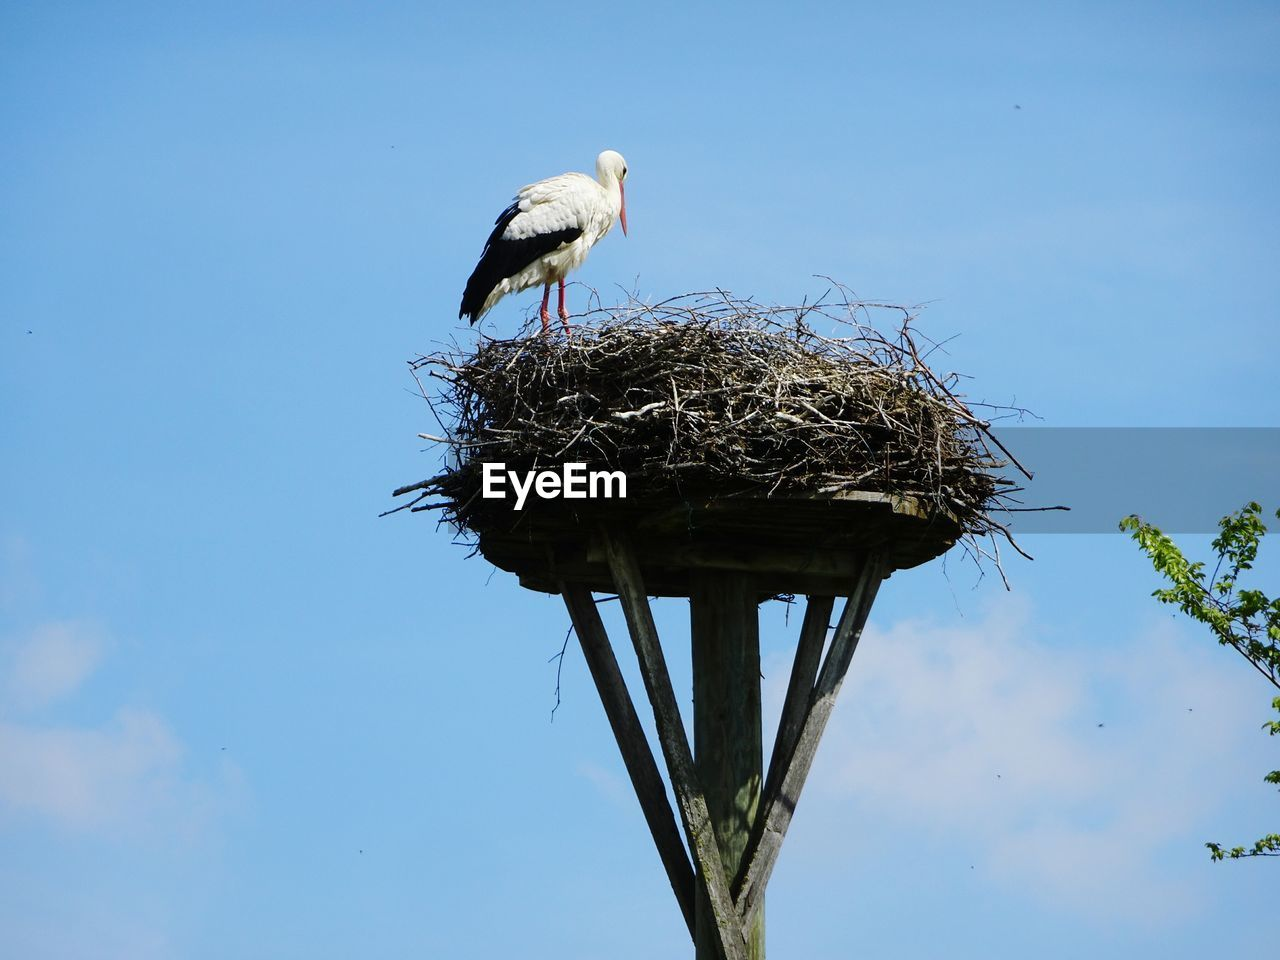 bird, animal themes, animals in the wild, vertebrate, animal, animal wildlife, animal nest, one animal, sky, stork, nature, day, blue, no people, perching, low angle view, clear sky, plant, bird nest, outdoors